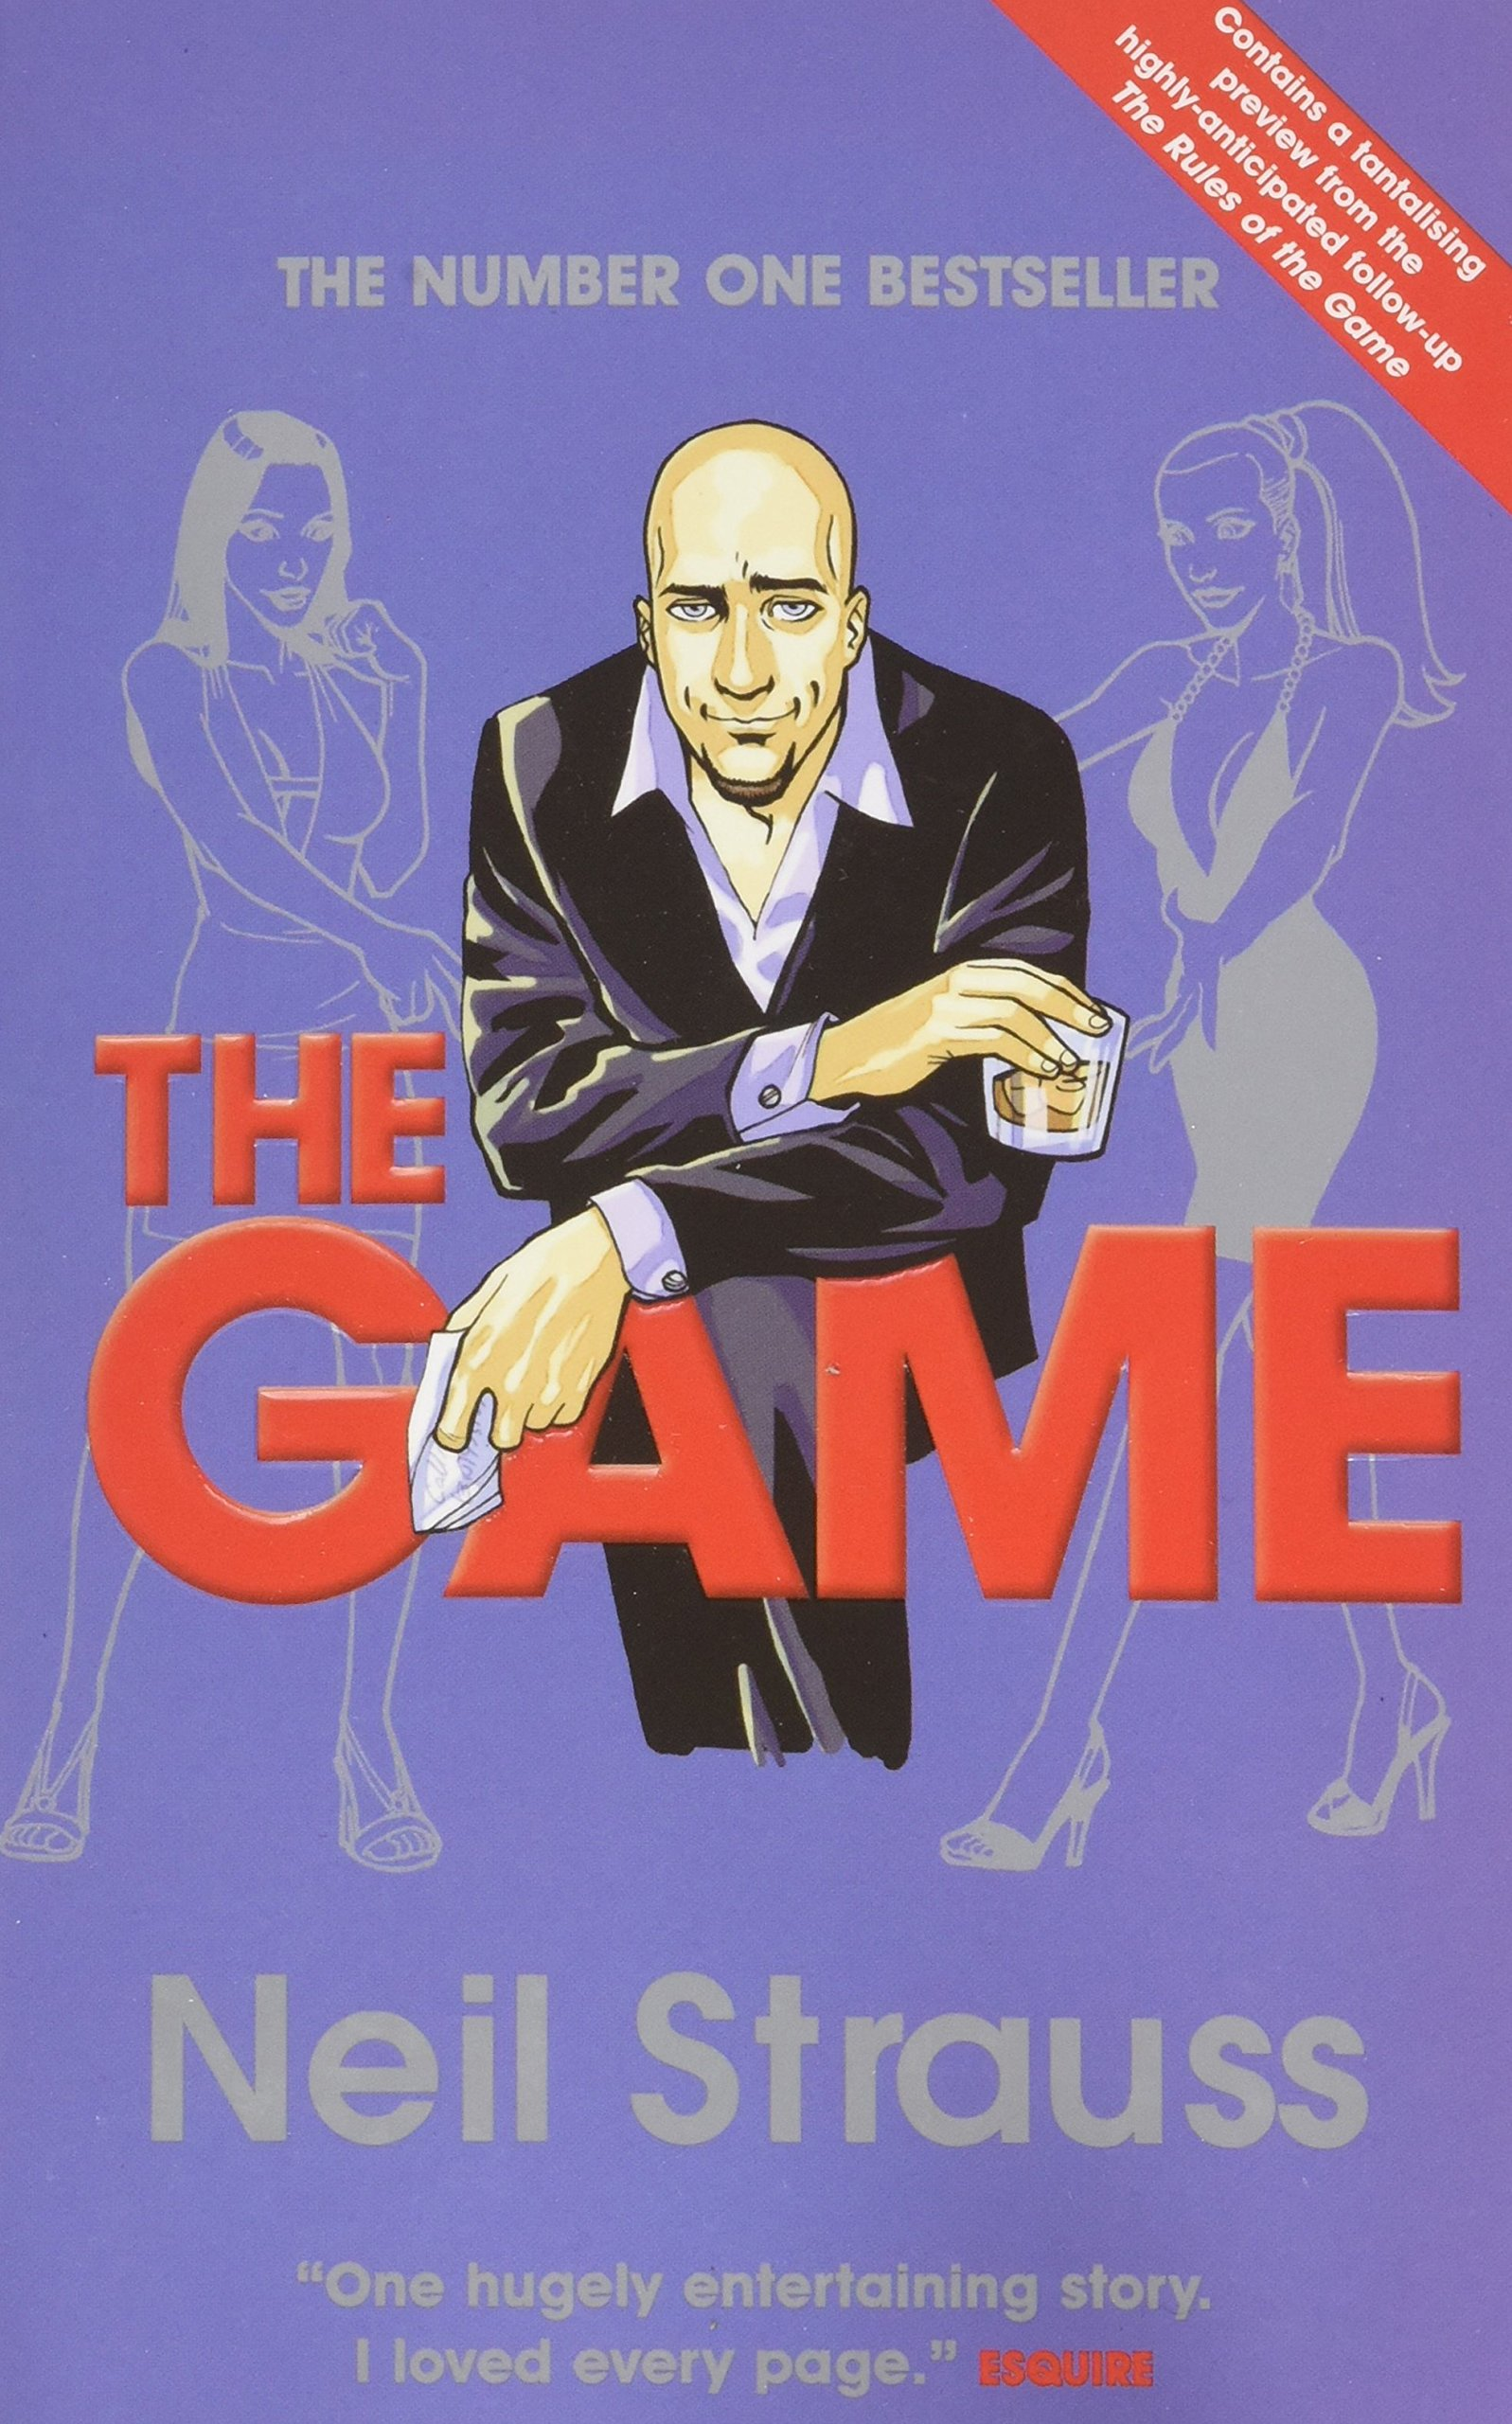 Neil strauss free online narcissism and gambling